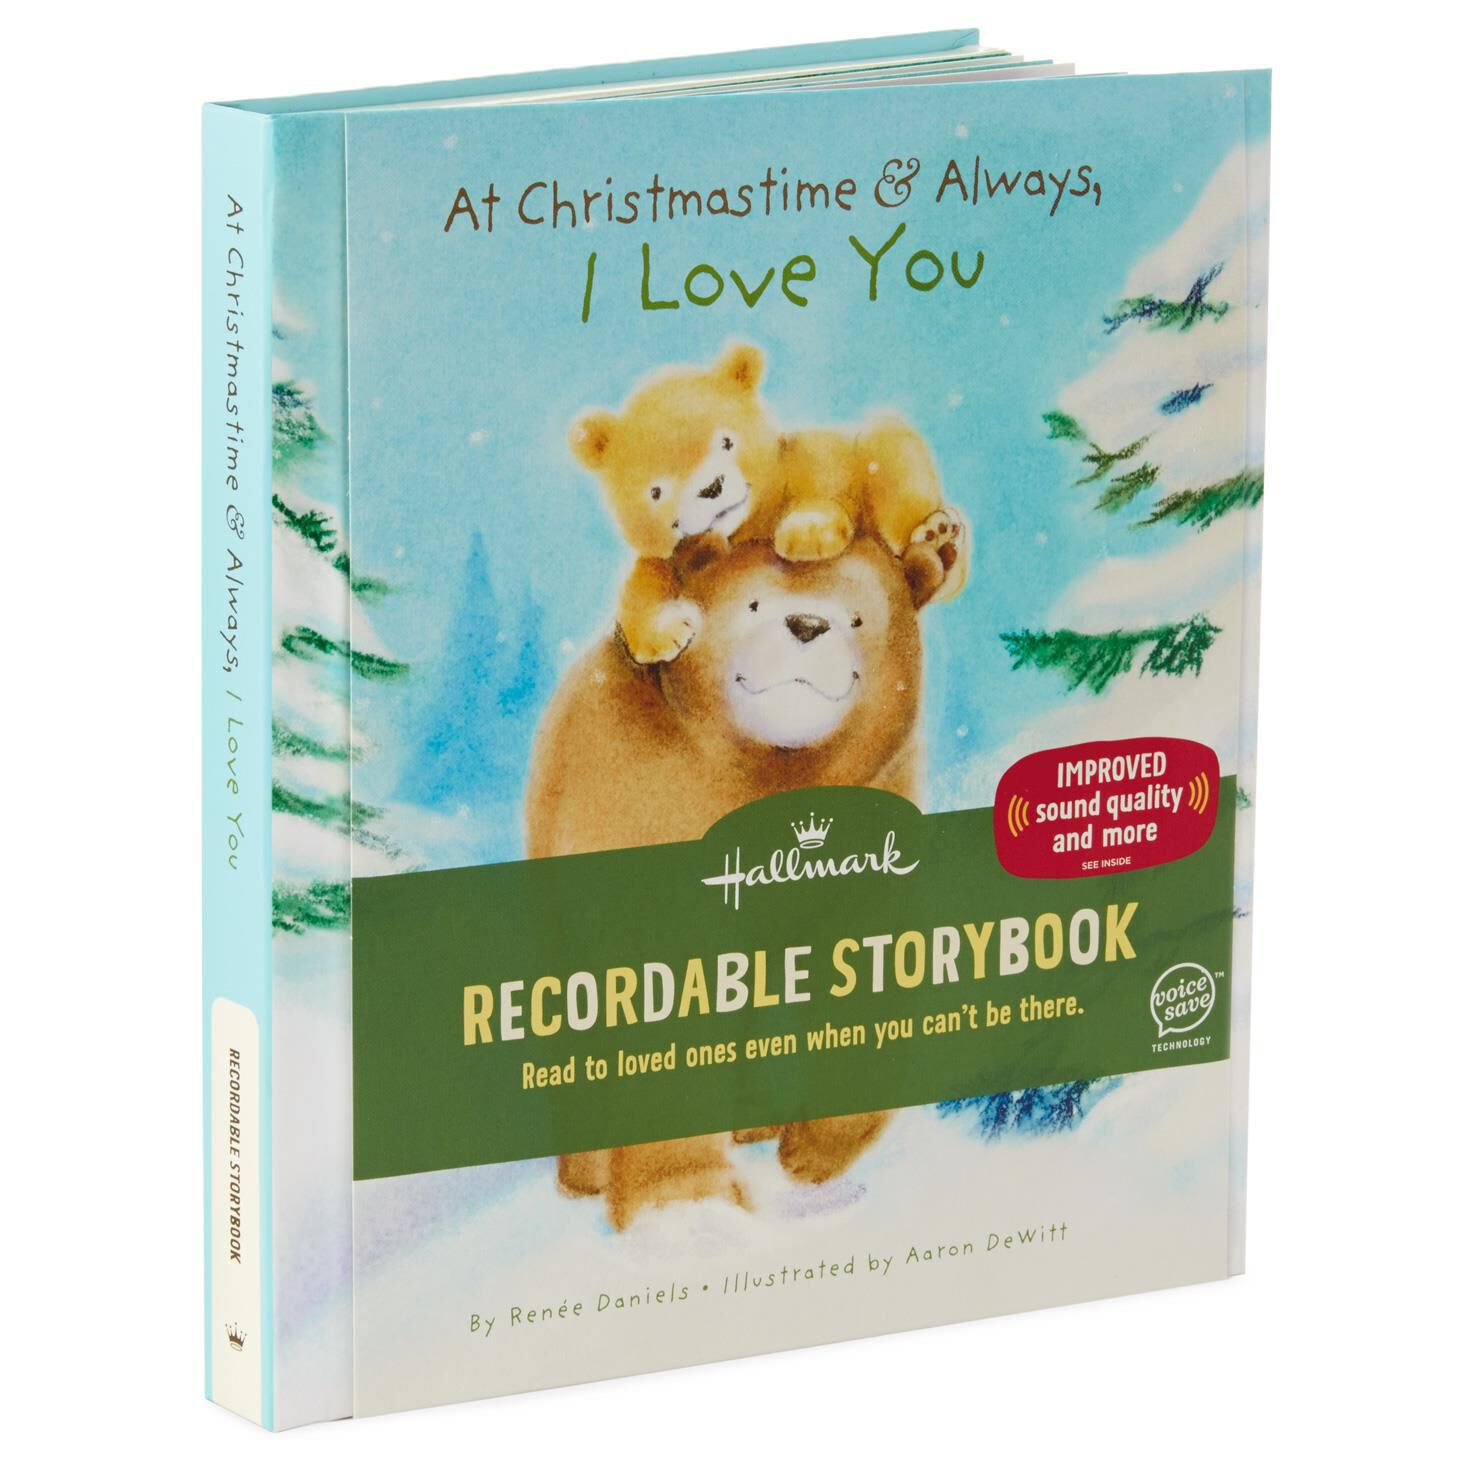 At Christmastime and Always, I Love You Recordable Storybook ...